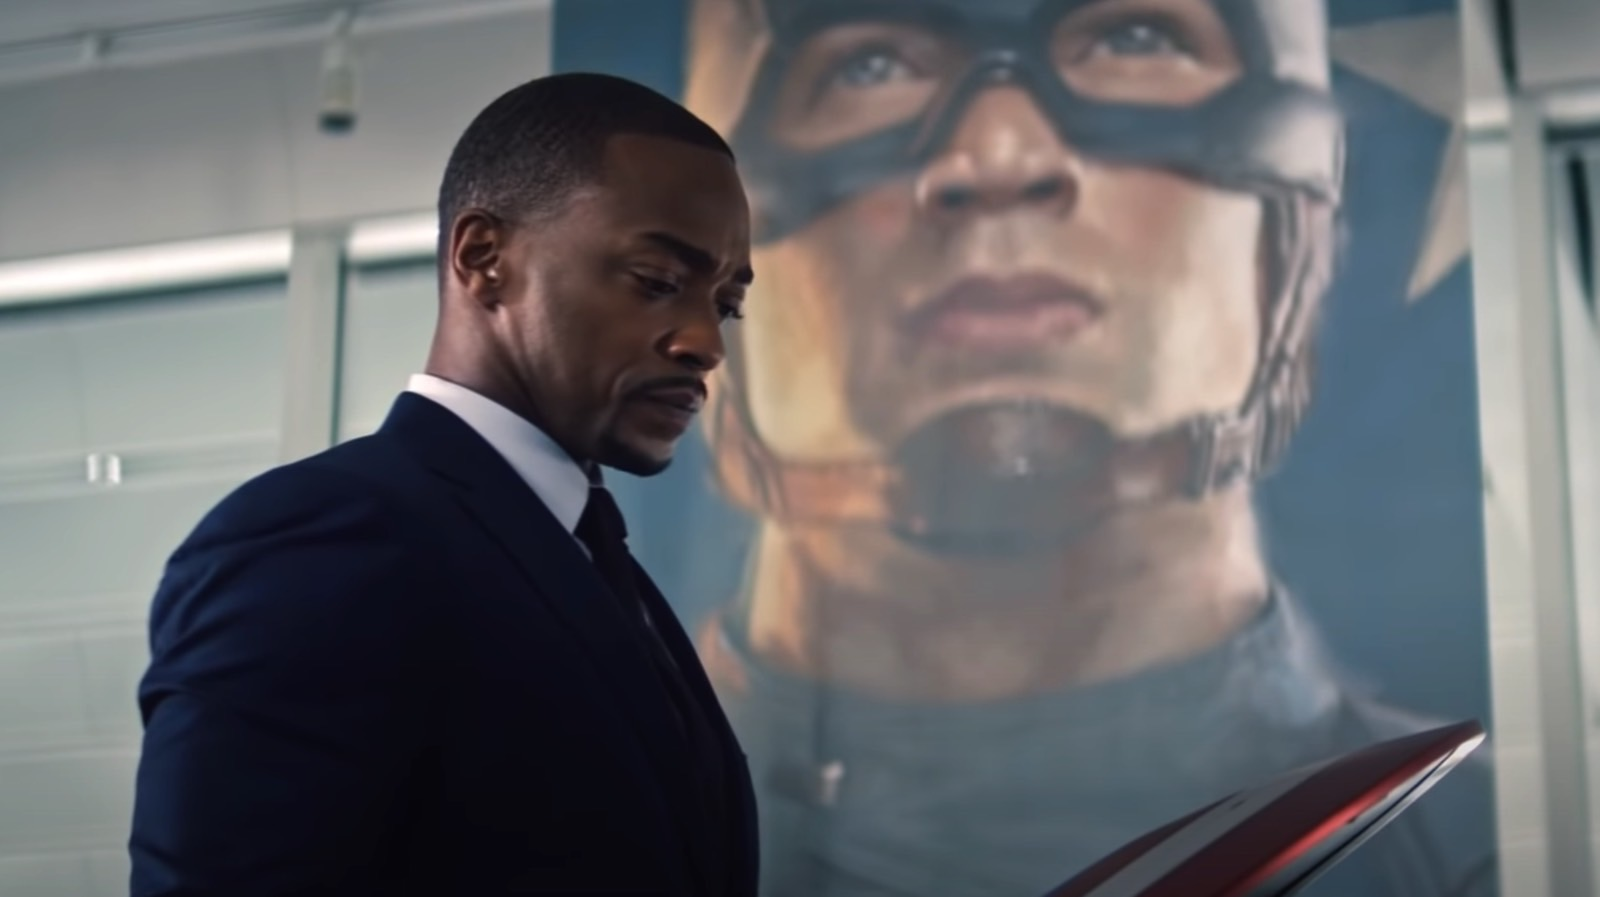 bgr.com - Chris Smith - Falcon and the Winter Soldier's shocking cameo will also appear in this new Marvel movie